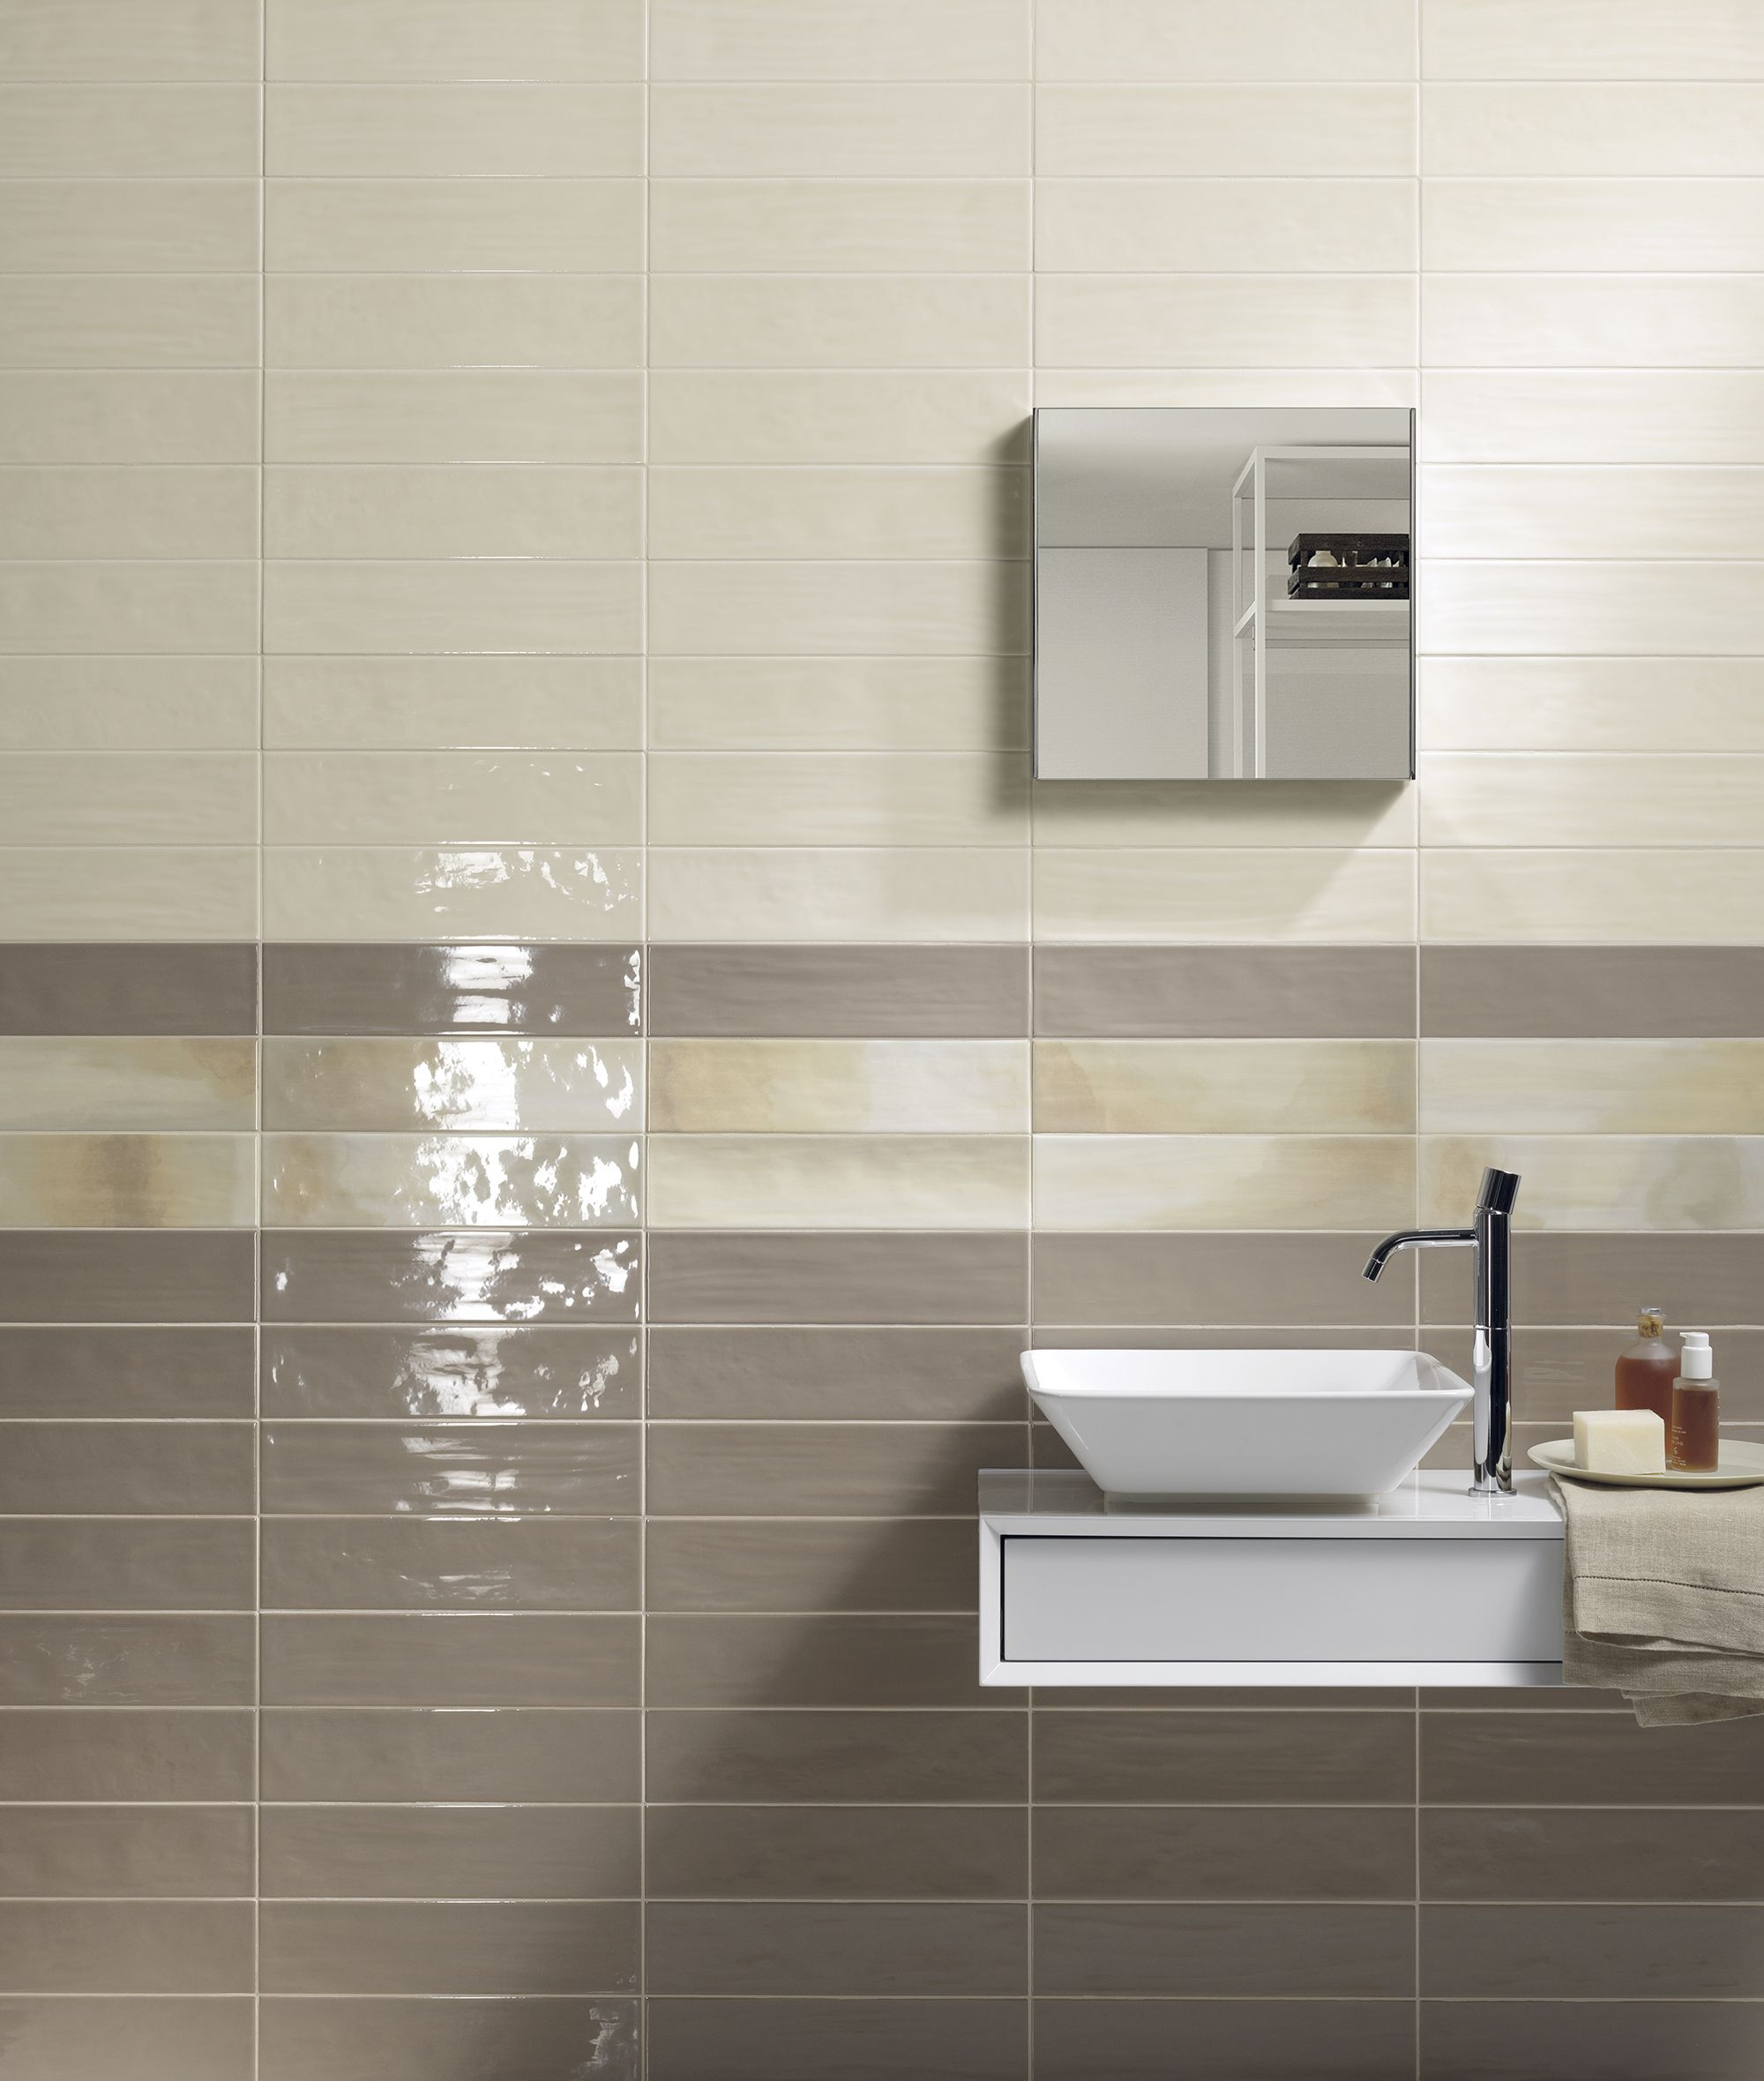 Circa 37 porcelain subway tile our products pinterest subway circa 37 porcelain subway tile dailygadgetfo Choice Image